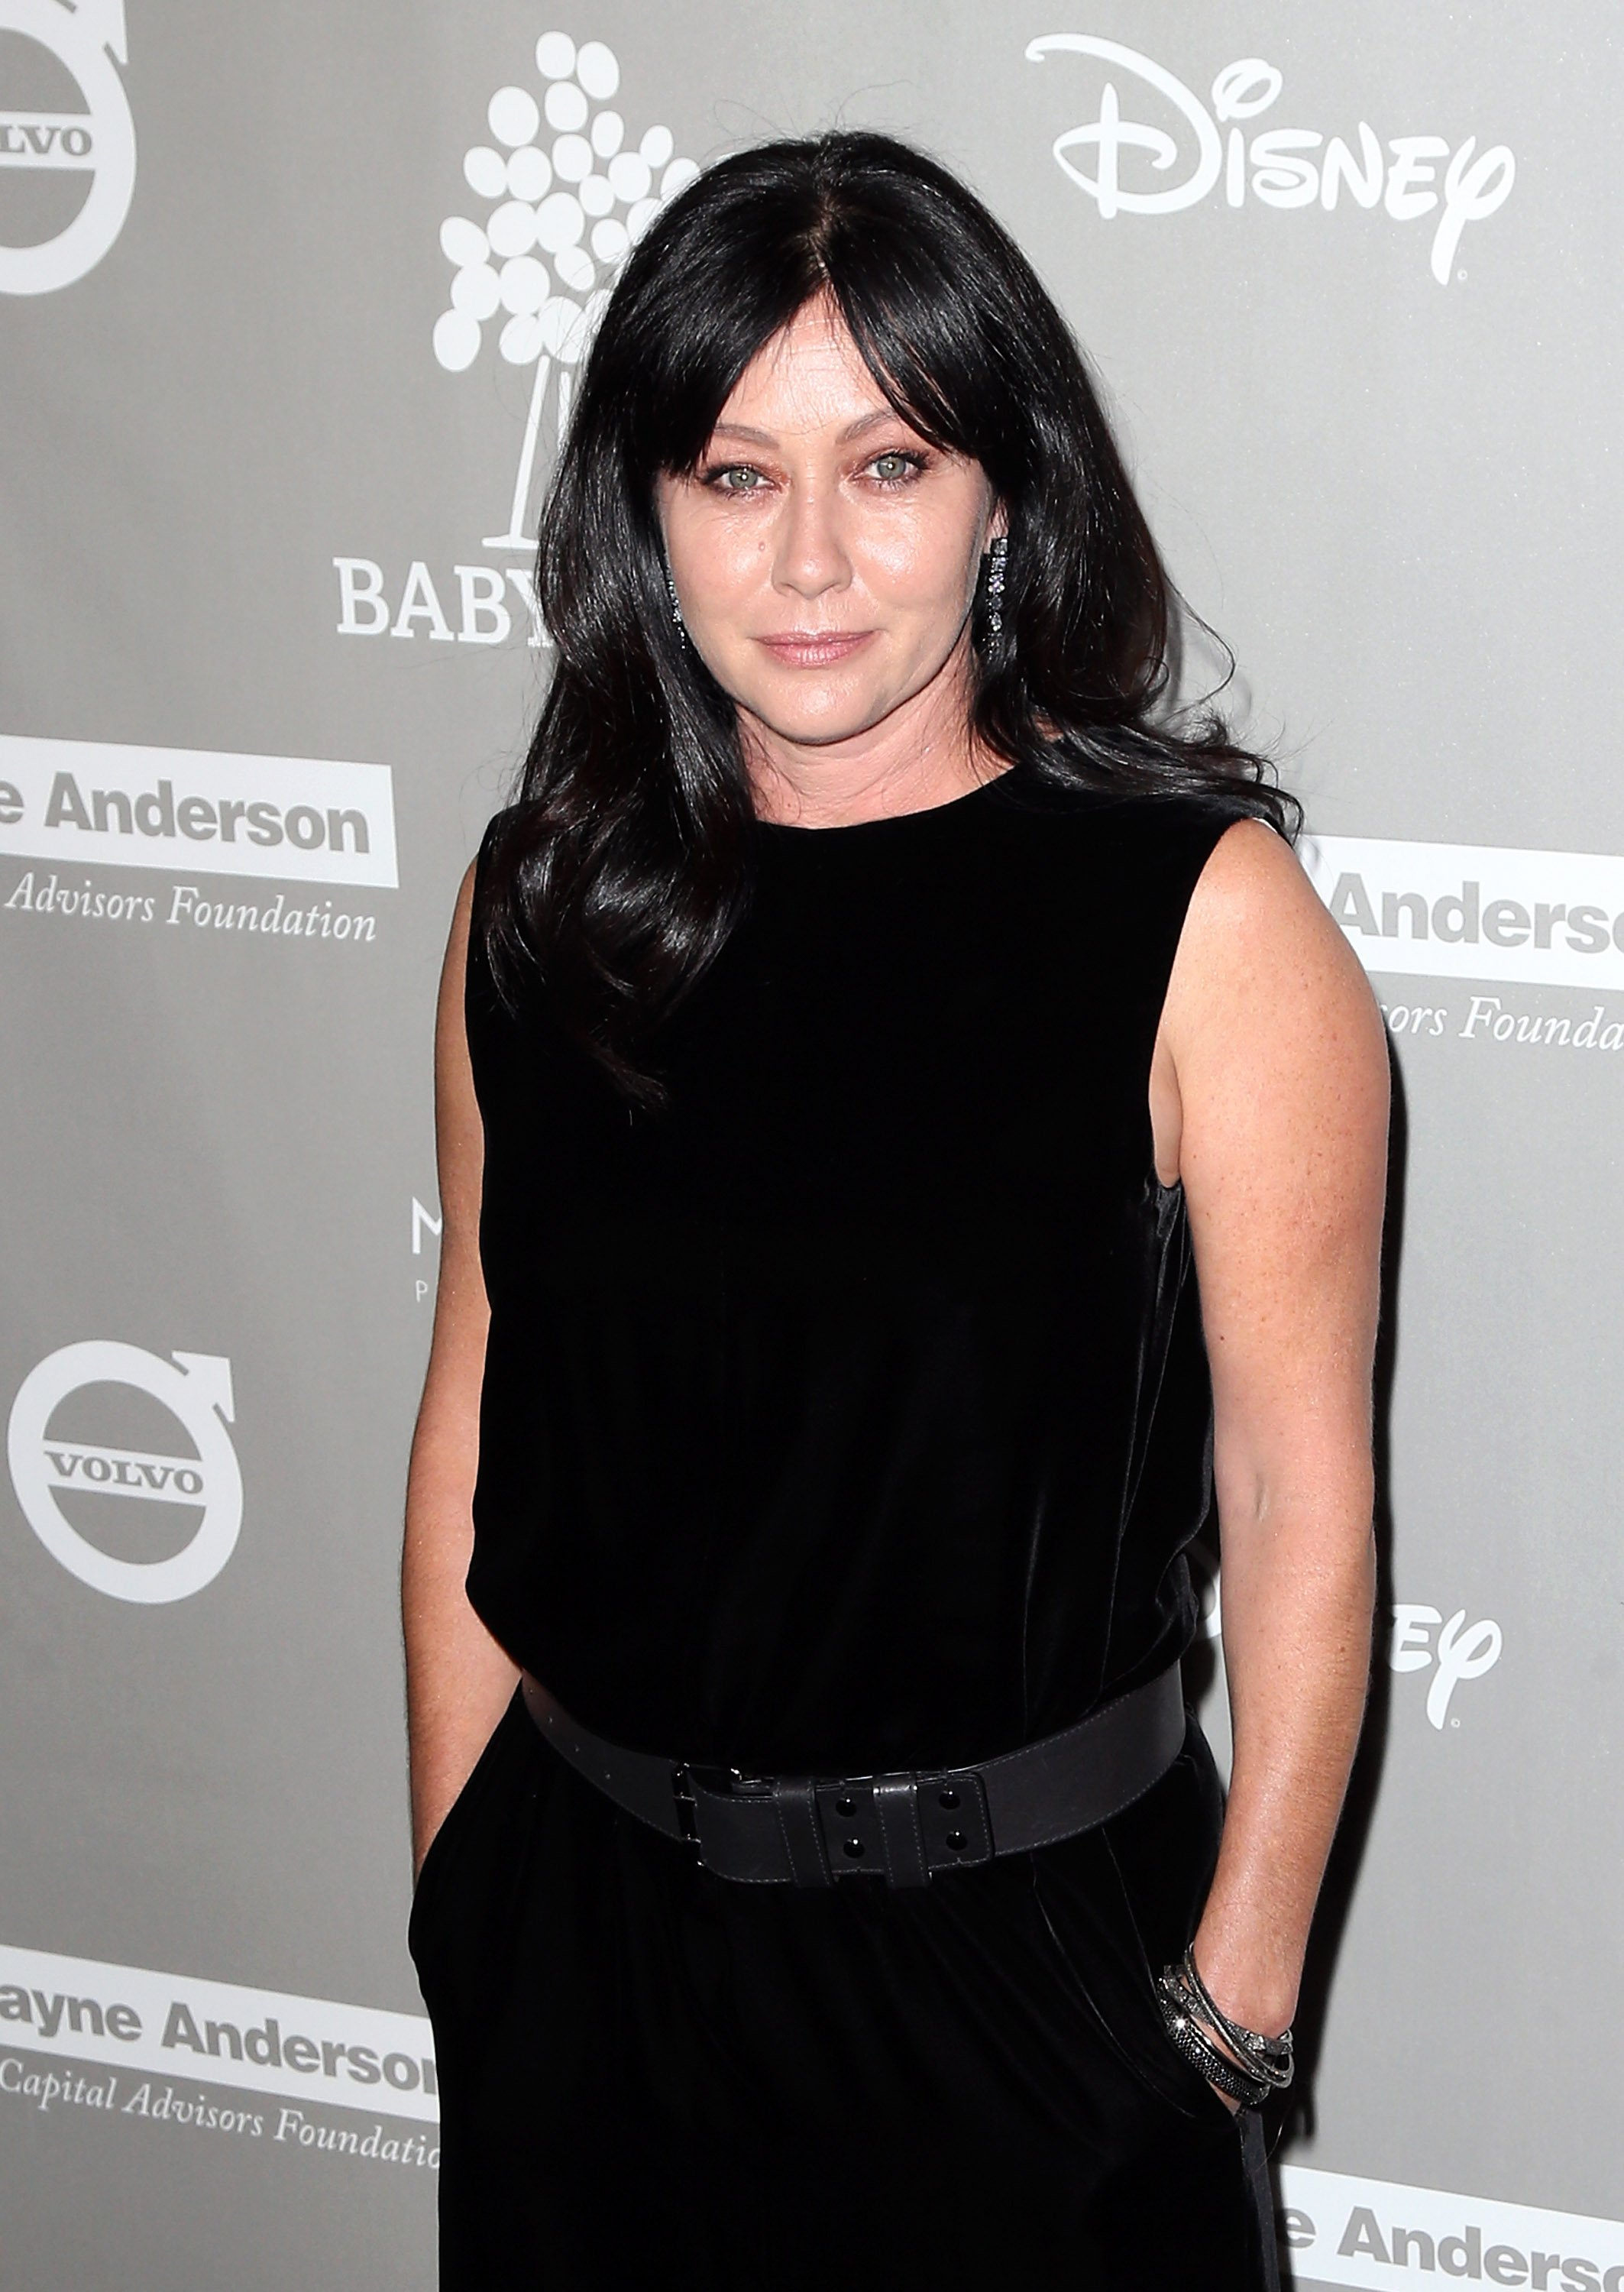 Shannen Doherty at the Baby2Baby Gala presented by MarulaOil & Kayne Capital Advisors Foundation honoring Kerry Washington at 3LABS on November 14, 2015 in Culver City, California   Photo: Getty Images